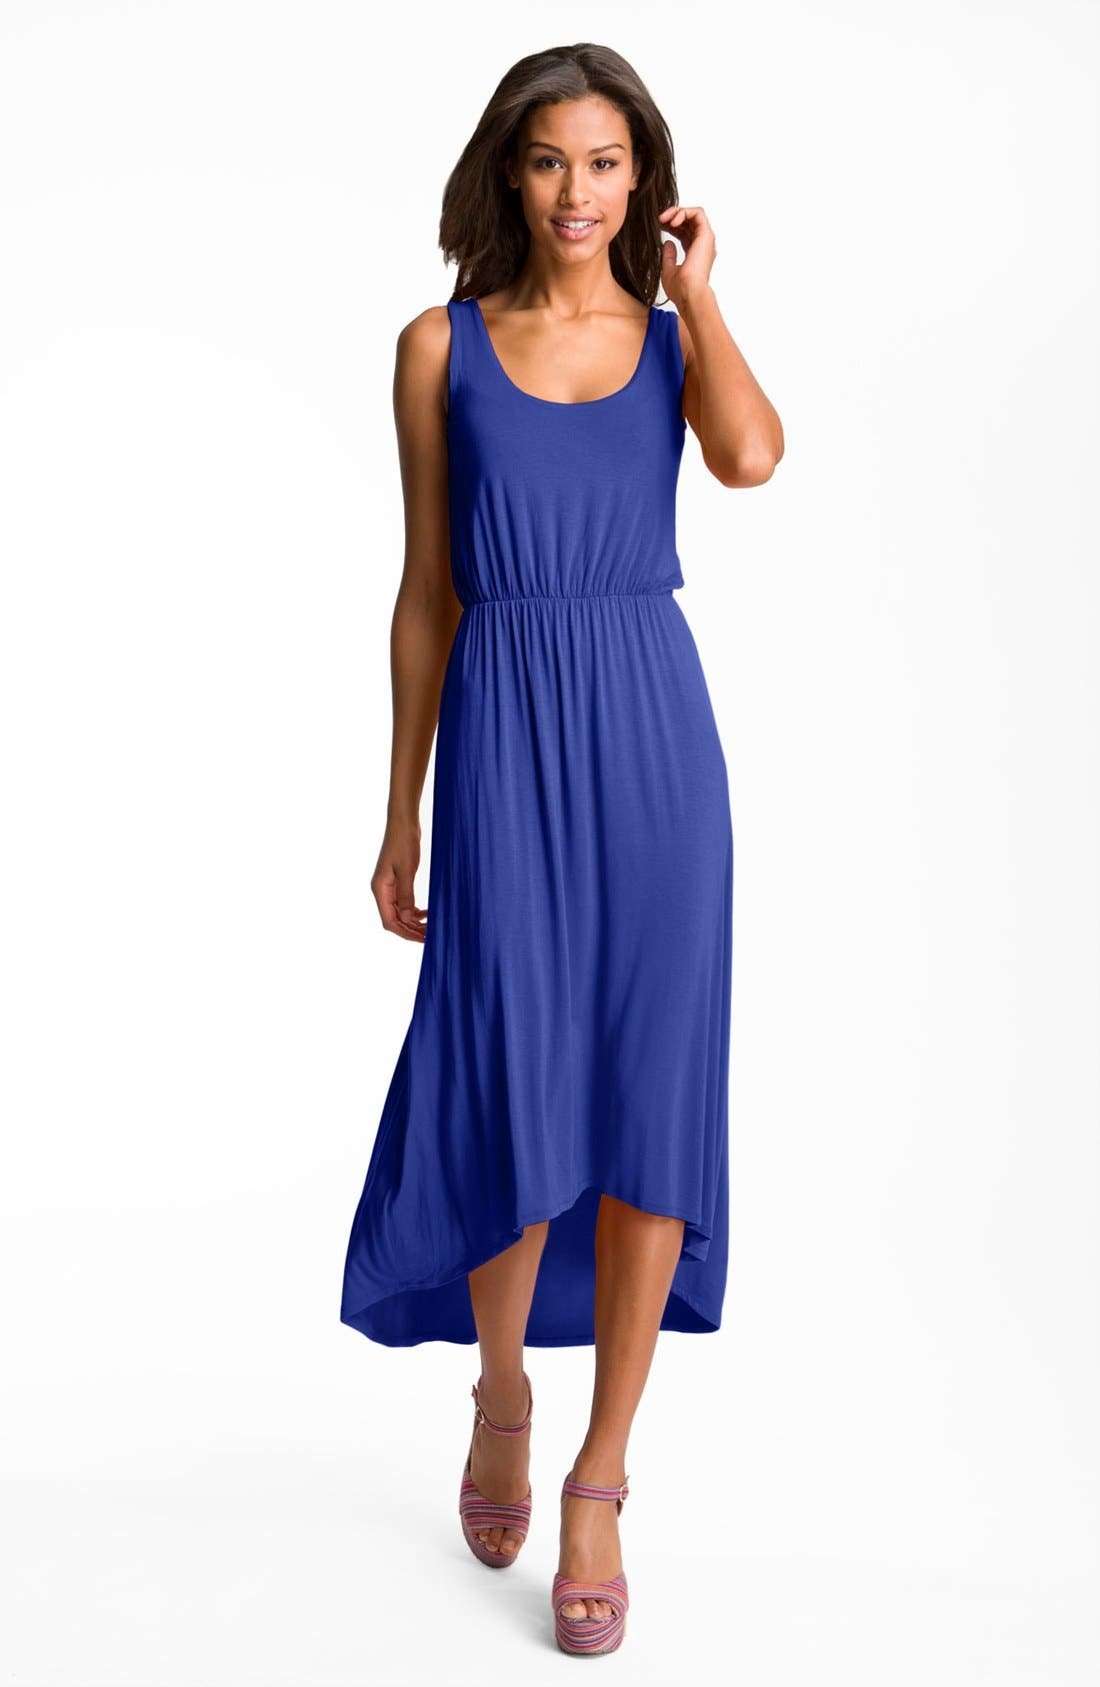 Knee-Length Casual Dresses: Sweater, Jersey, Boatneck & More ...